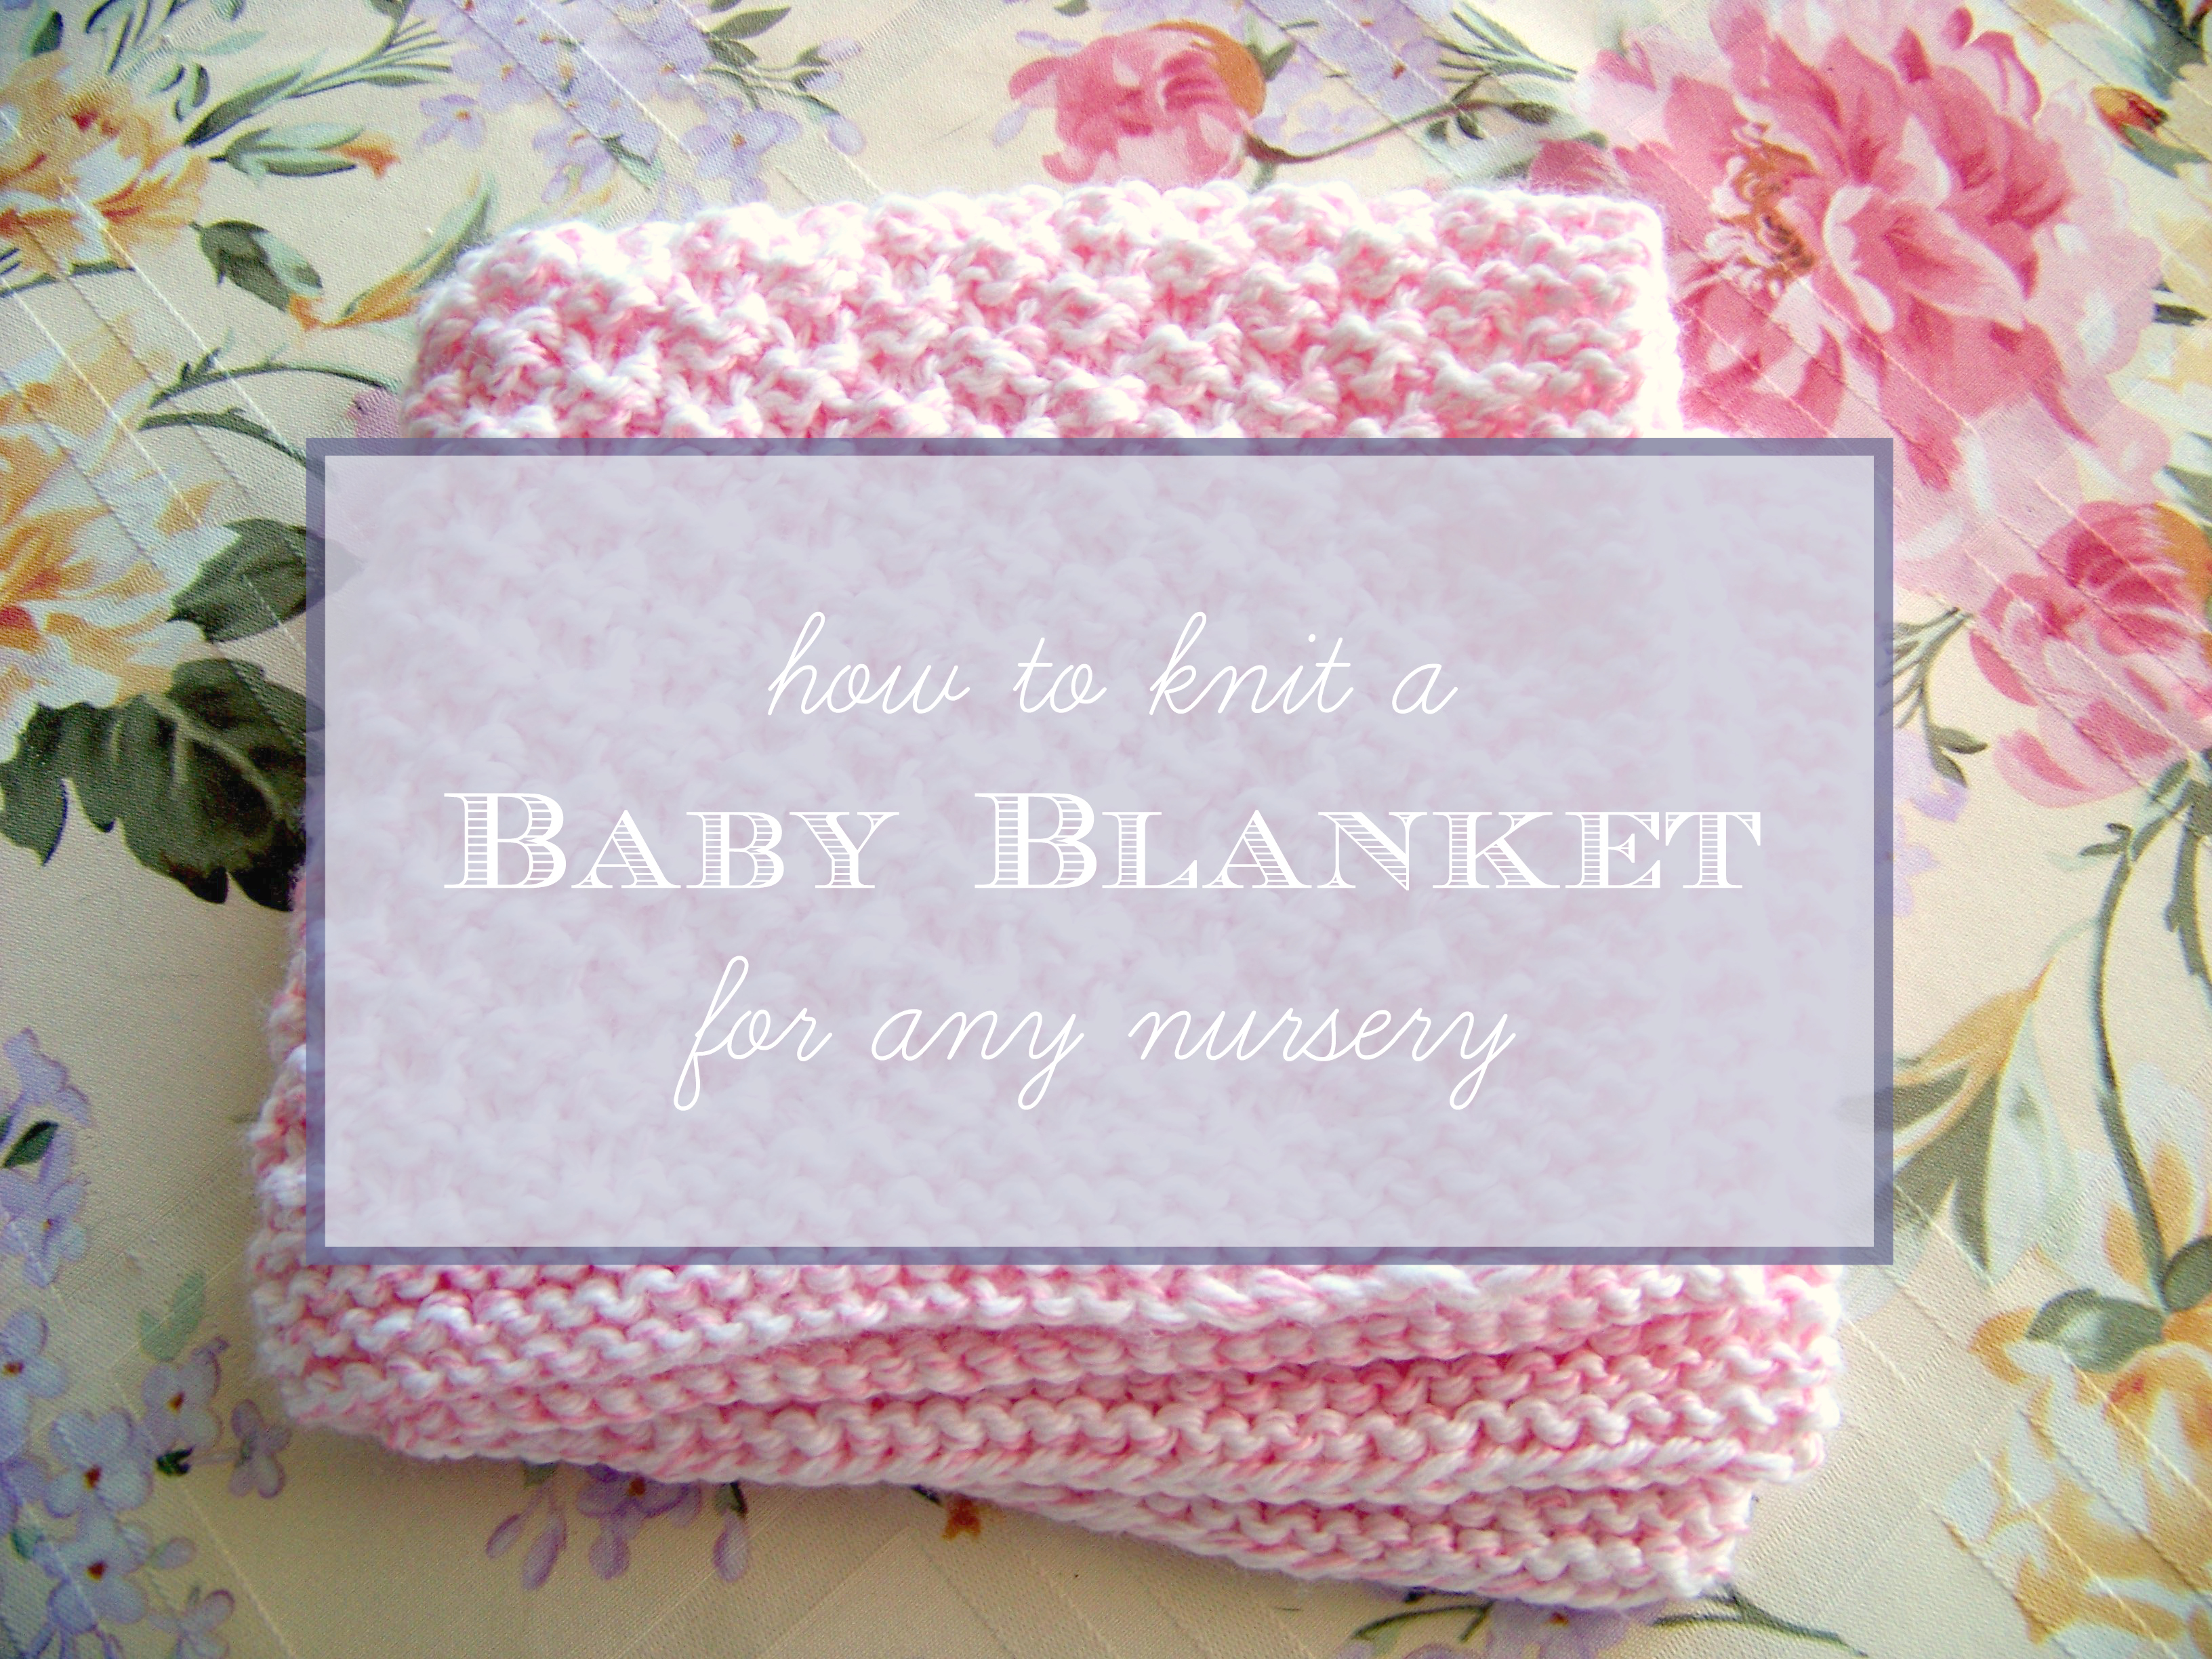 Easy Knitting Pattern For Baby Blanket How To Knit A Ba Blanket